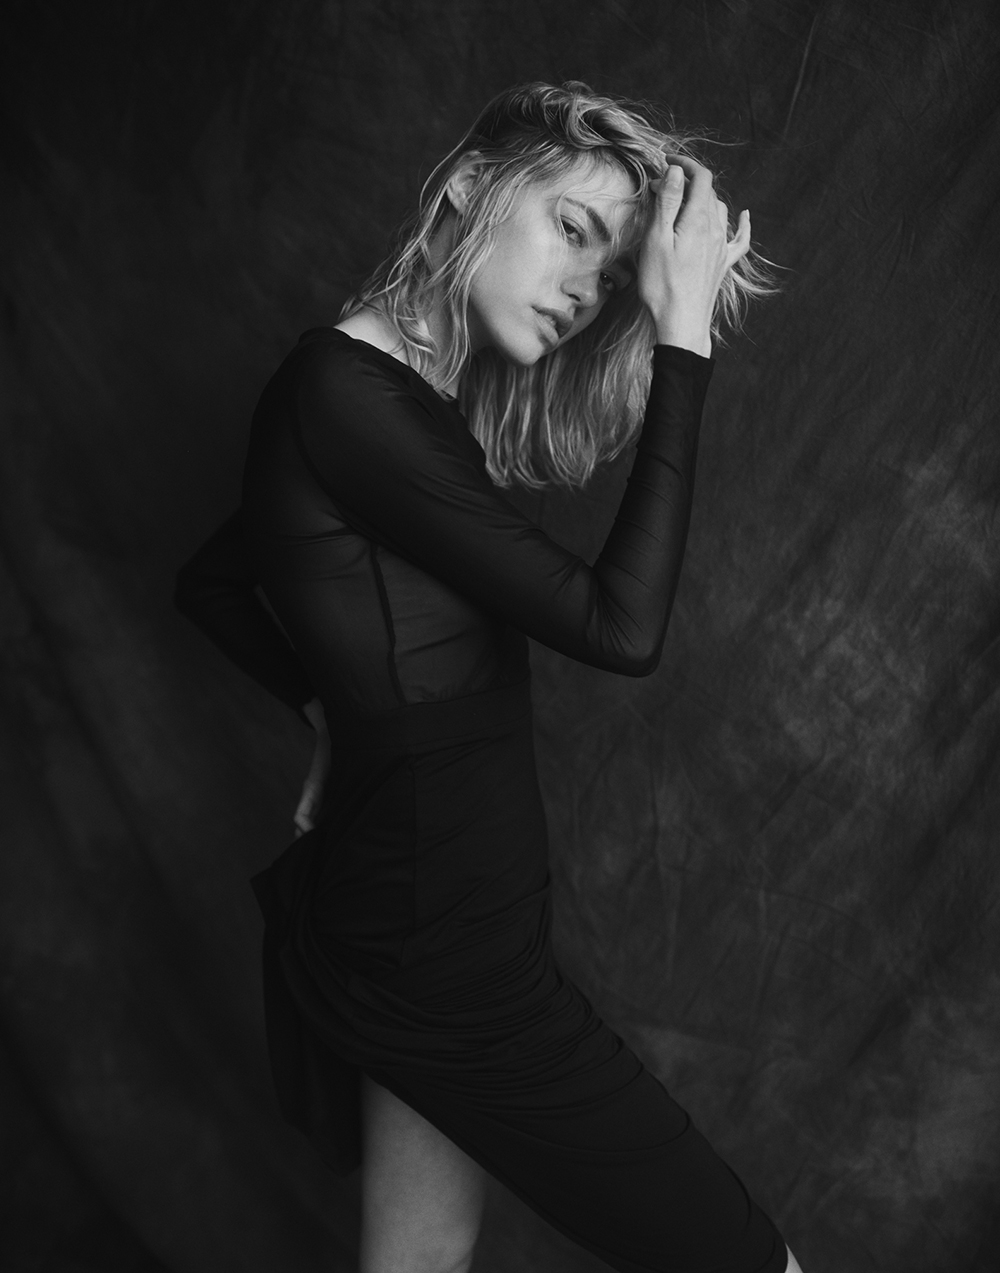 Black and white photograph of model Cora Keegan by Ryan Kelly for MONROWE Magazine.